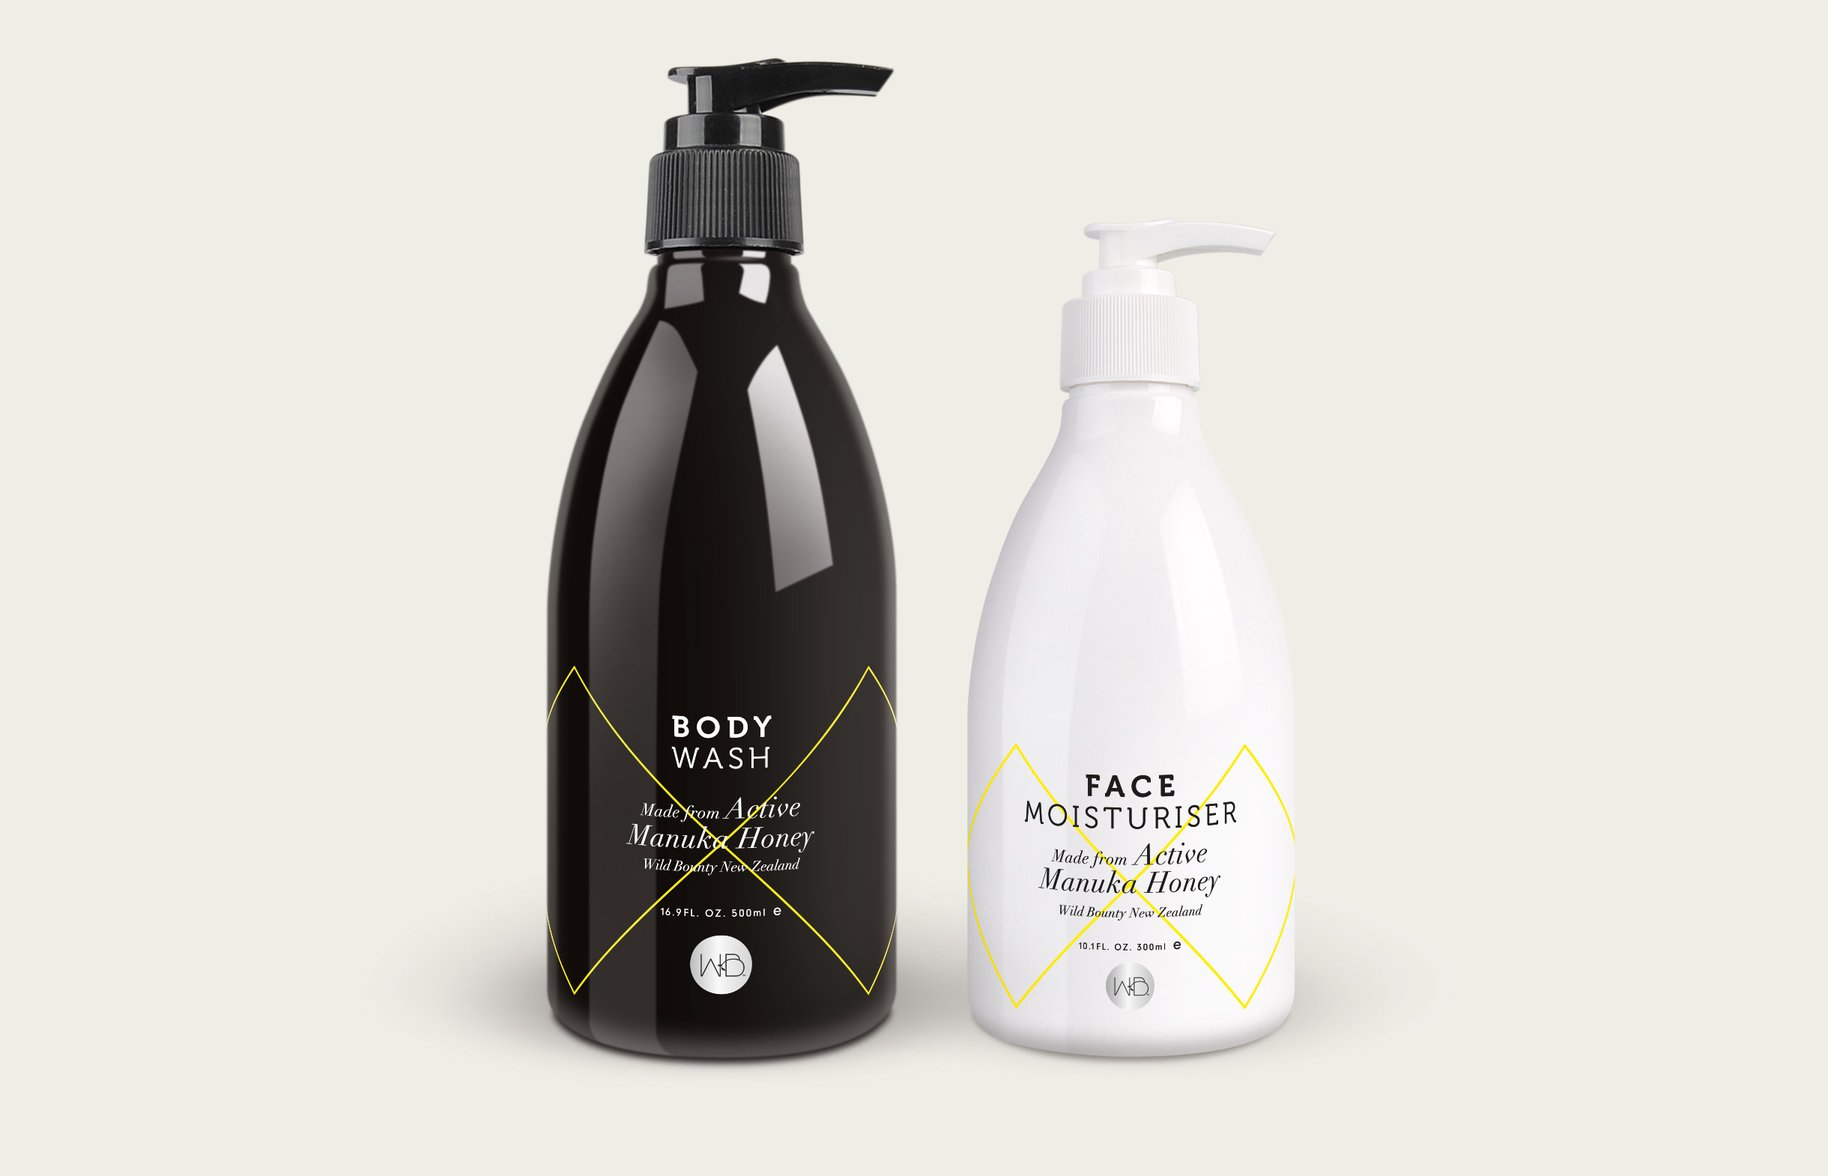 Wild Bounty body wash and face moisturiser packaging